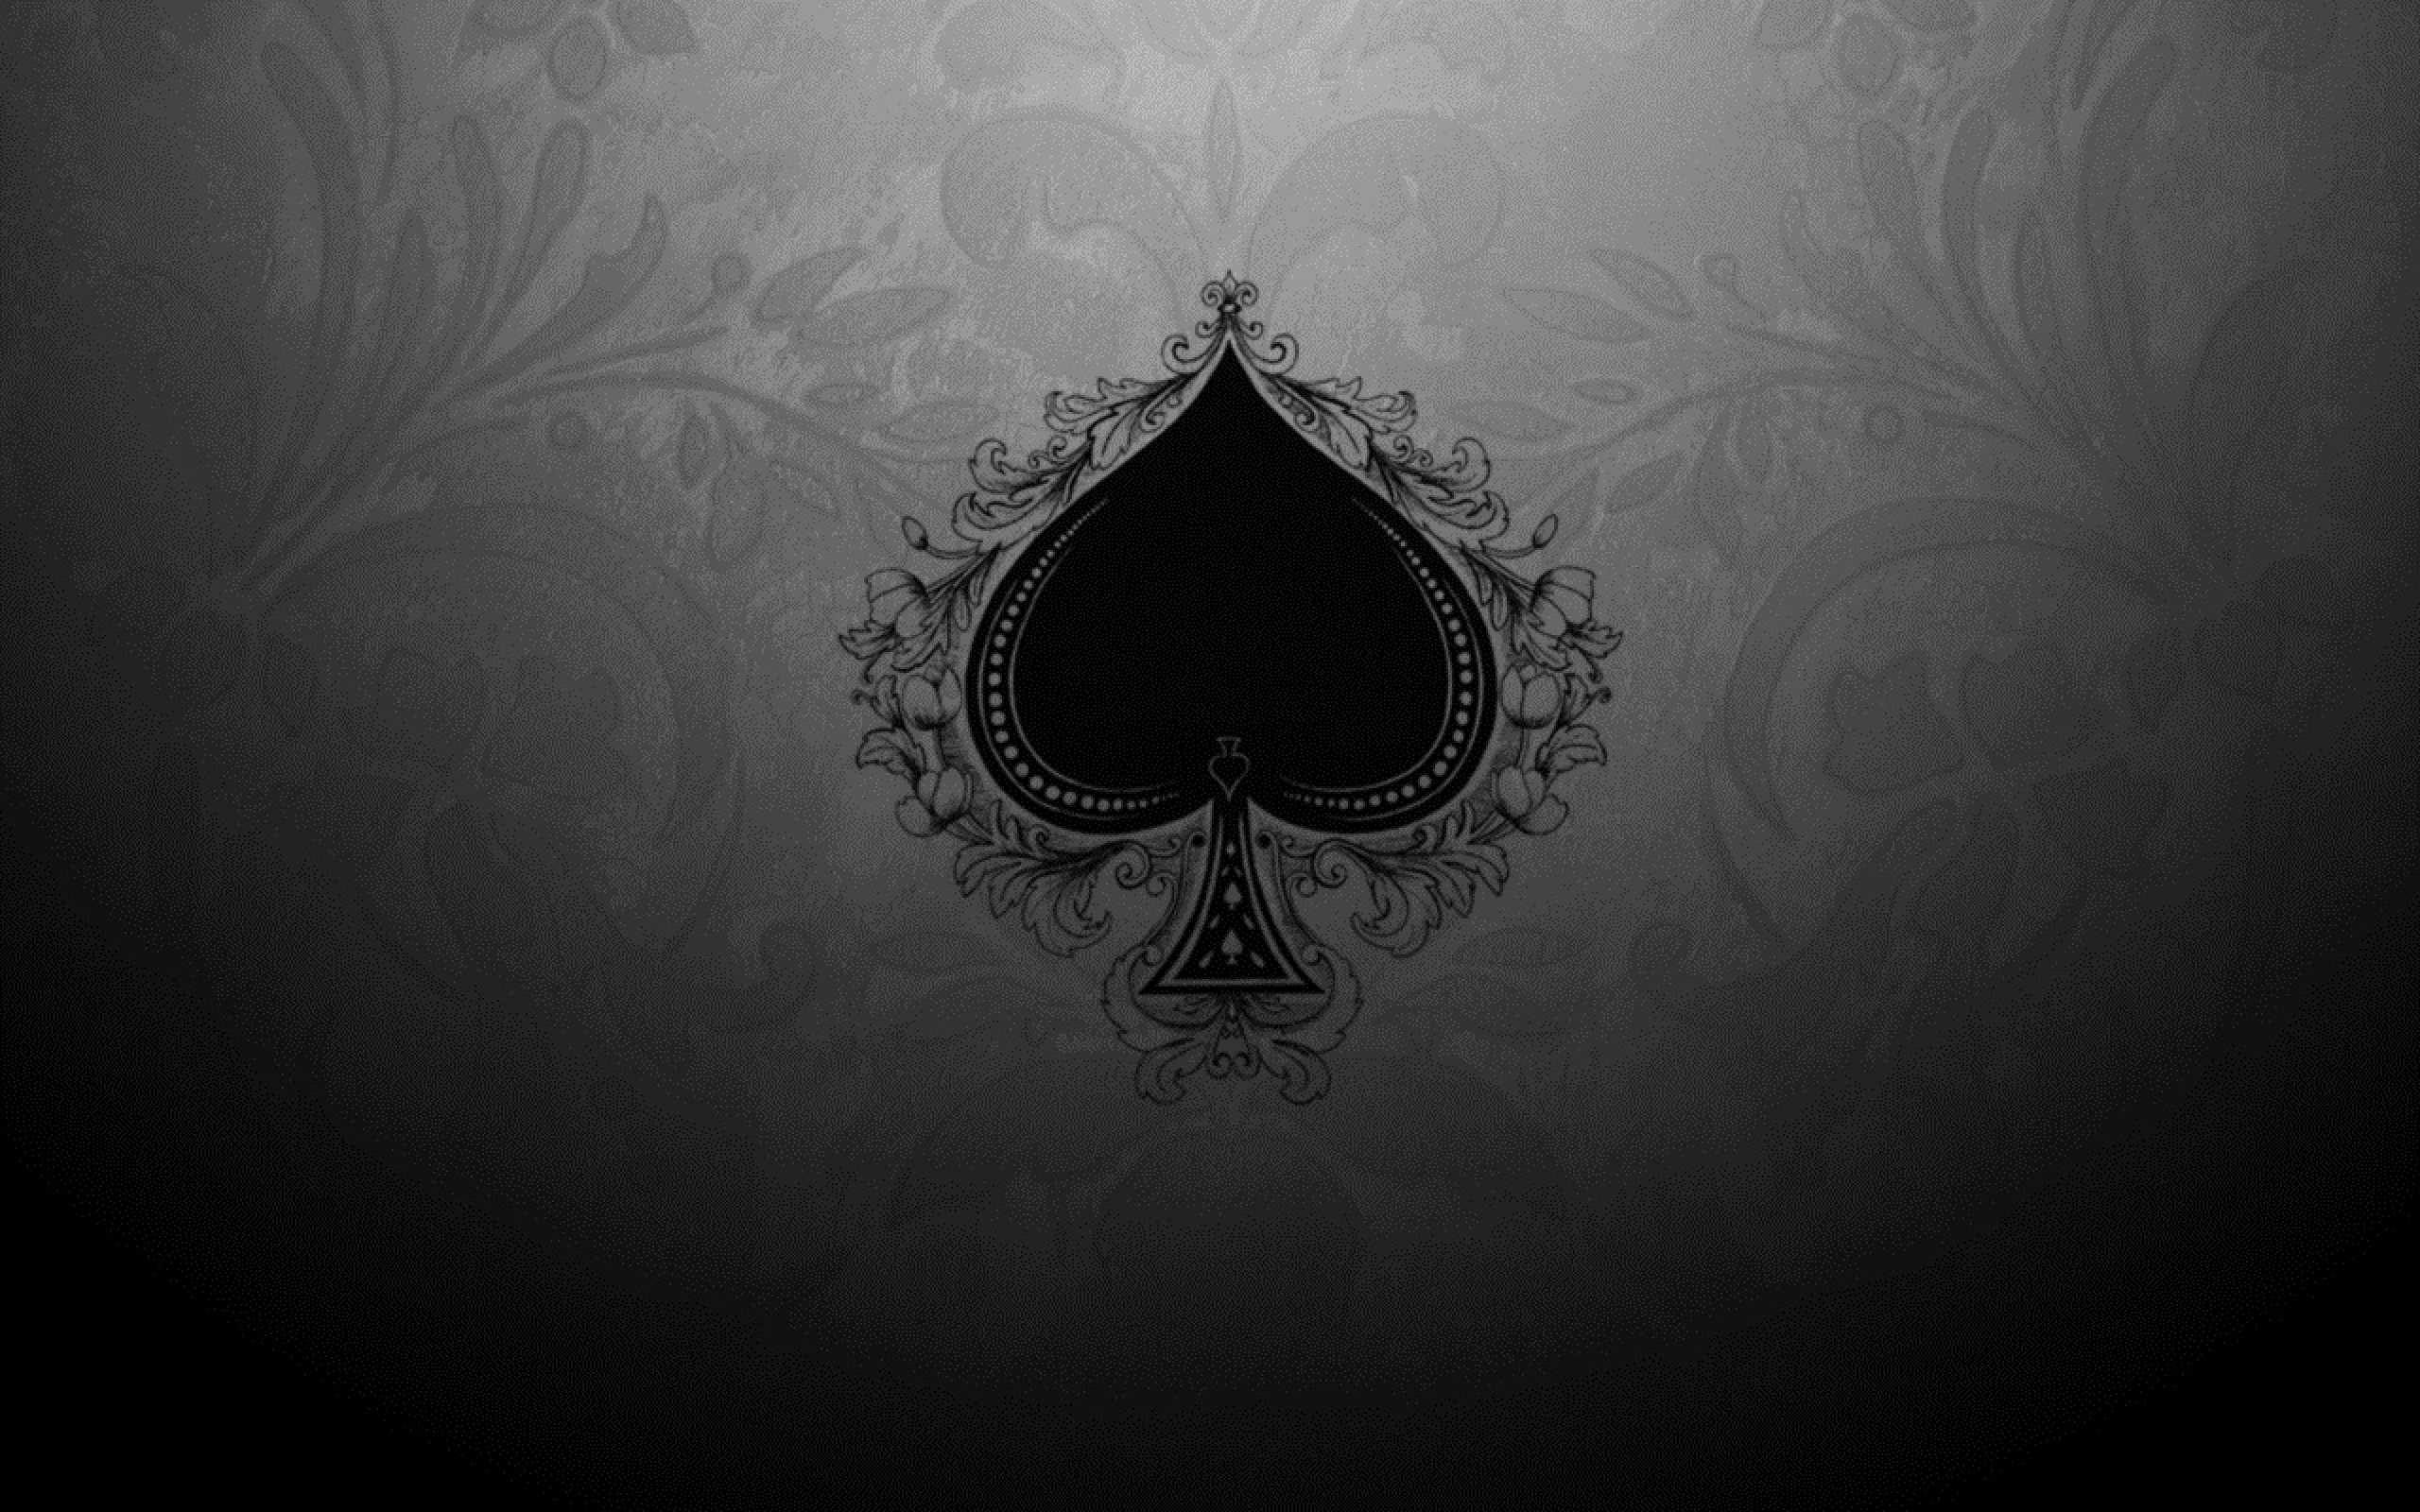 ace of spades wallpaper games - media file | pixelstalk